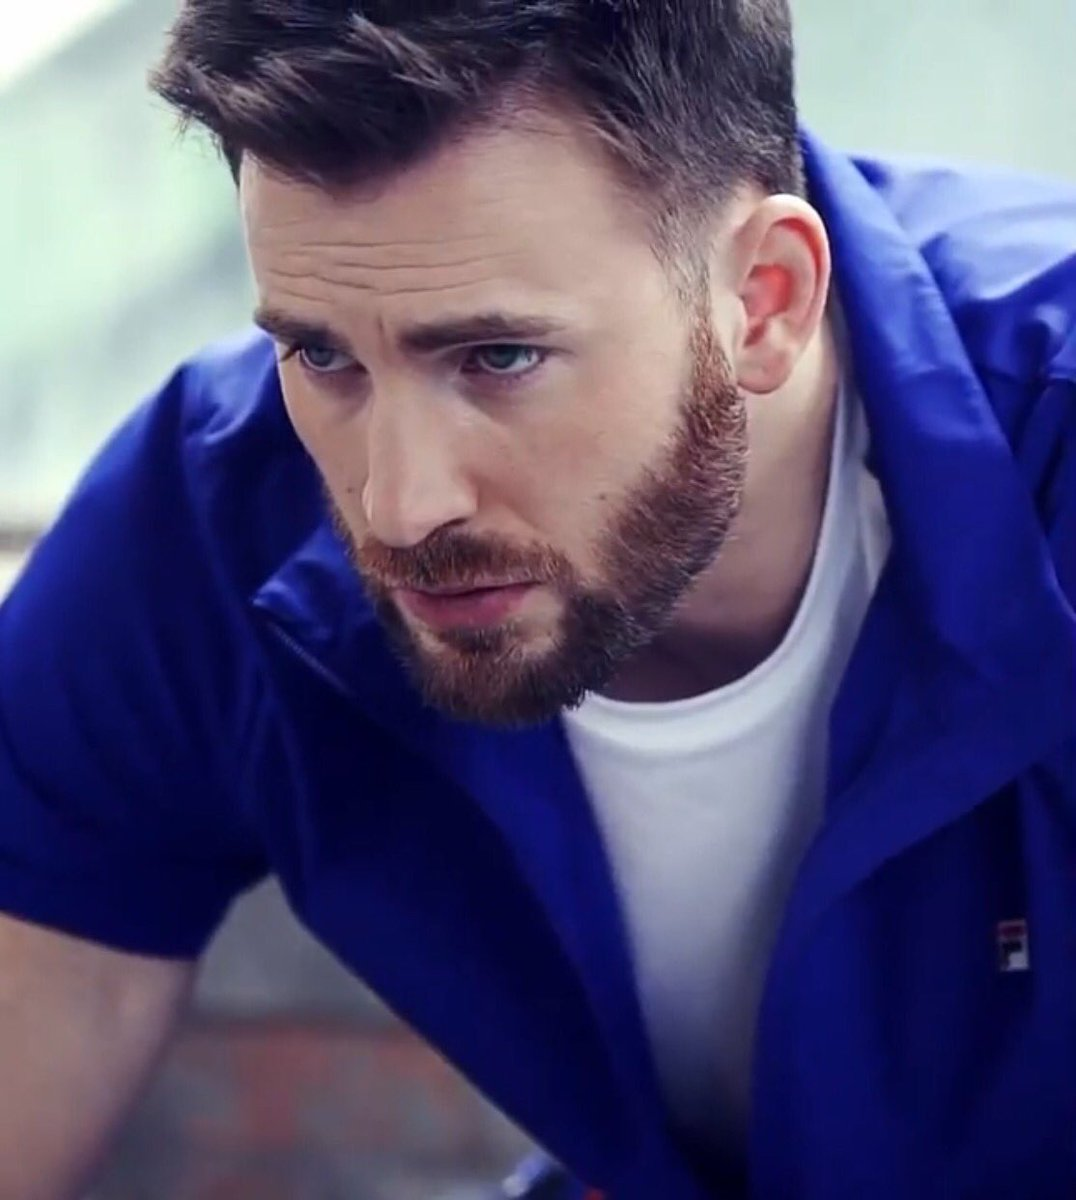 chris evans, cute, handsome, hollywood, style